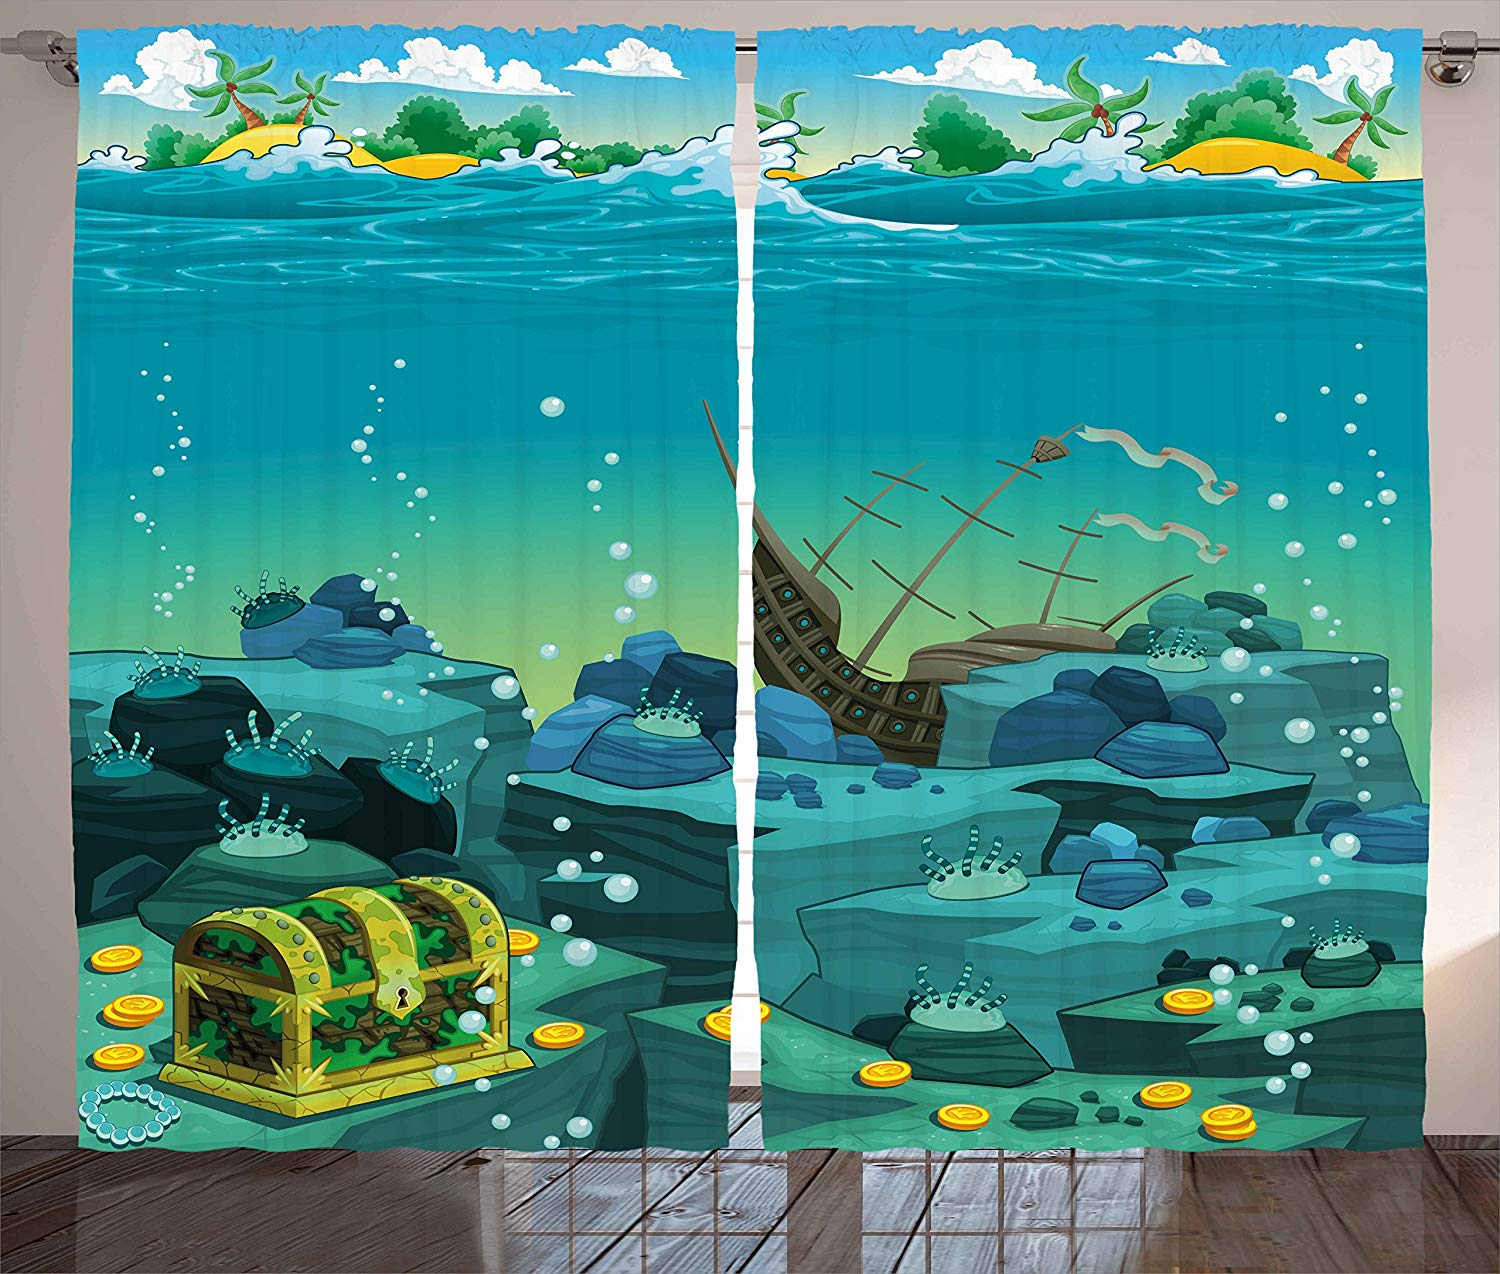 Cartoon Decor Curtains Seascape Underwater with Treasure Galleon and Sunk <font><b>Ship</b></font> Pirate Kids Print Living Room Bedroom Window Drap image